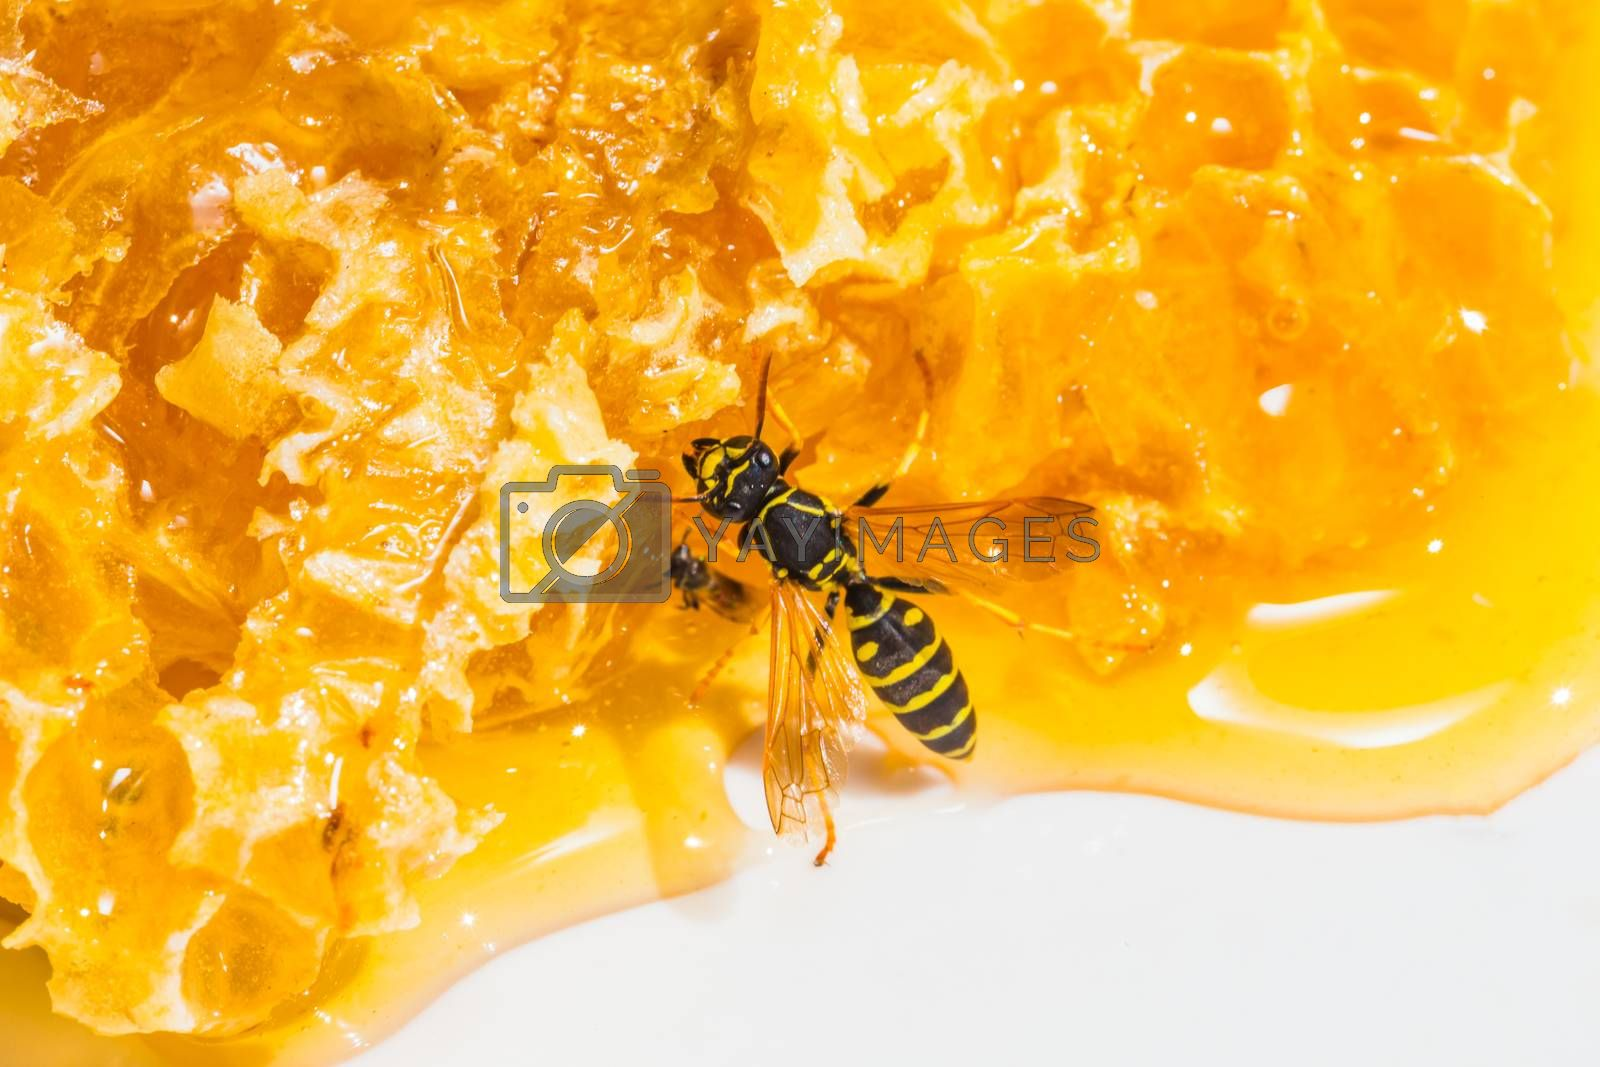 Royalty free image of close-up pieces of honeycomb with honey by oleg_zhukov